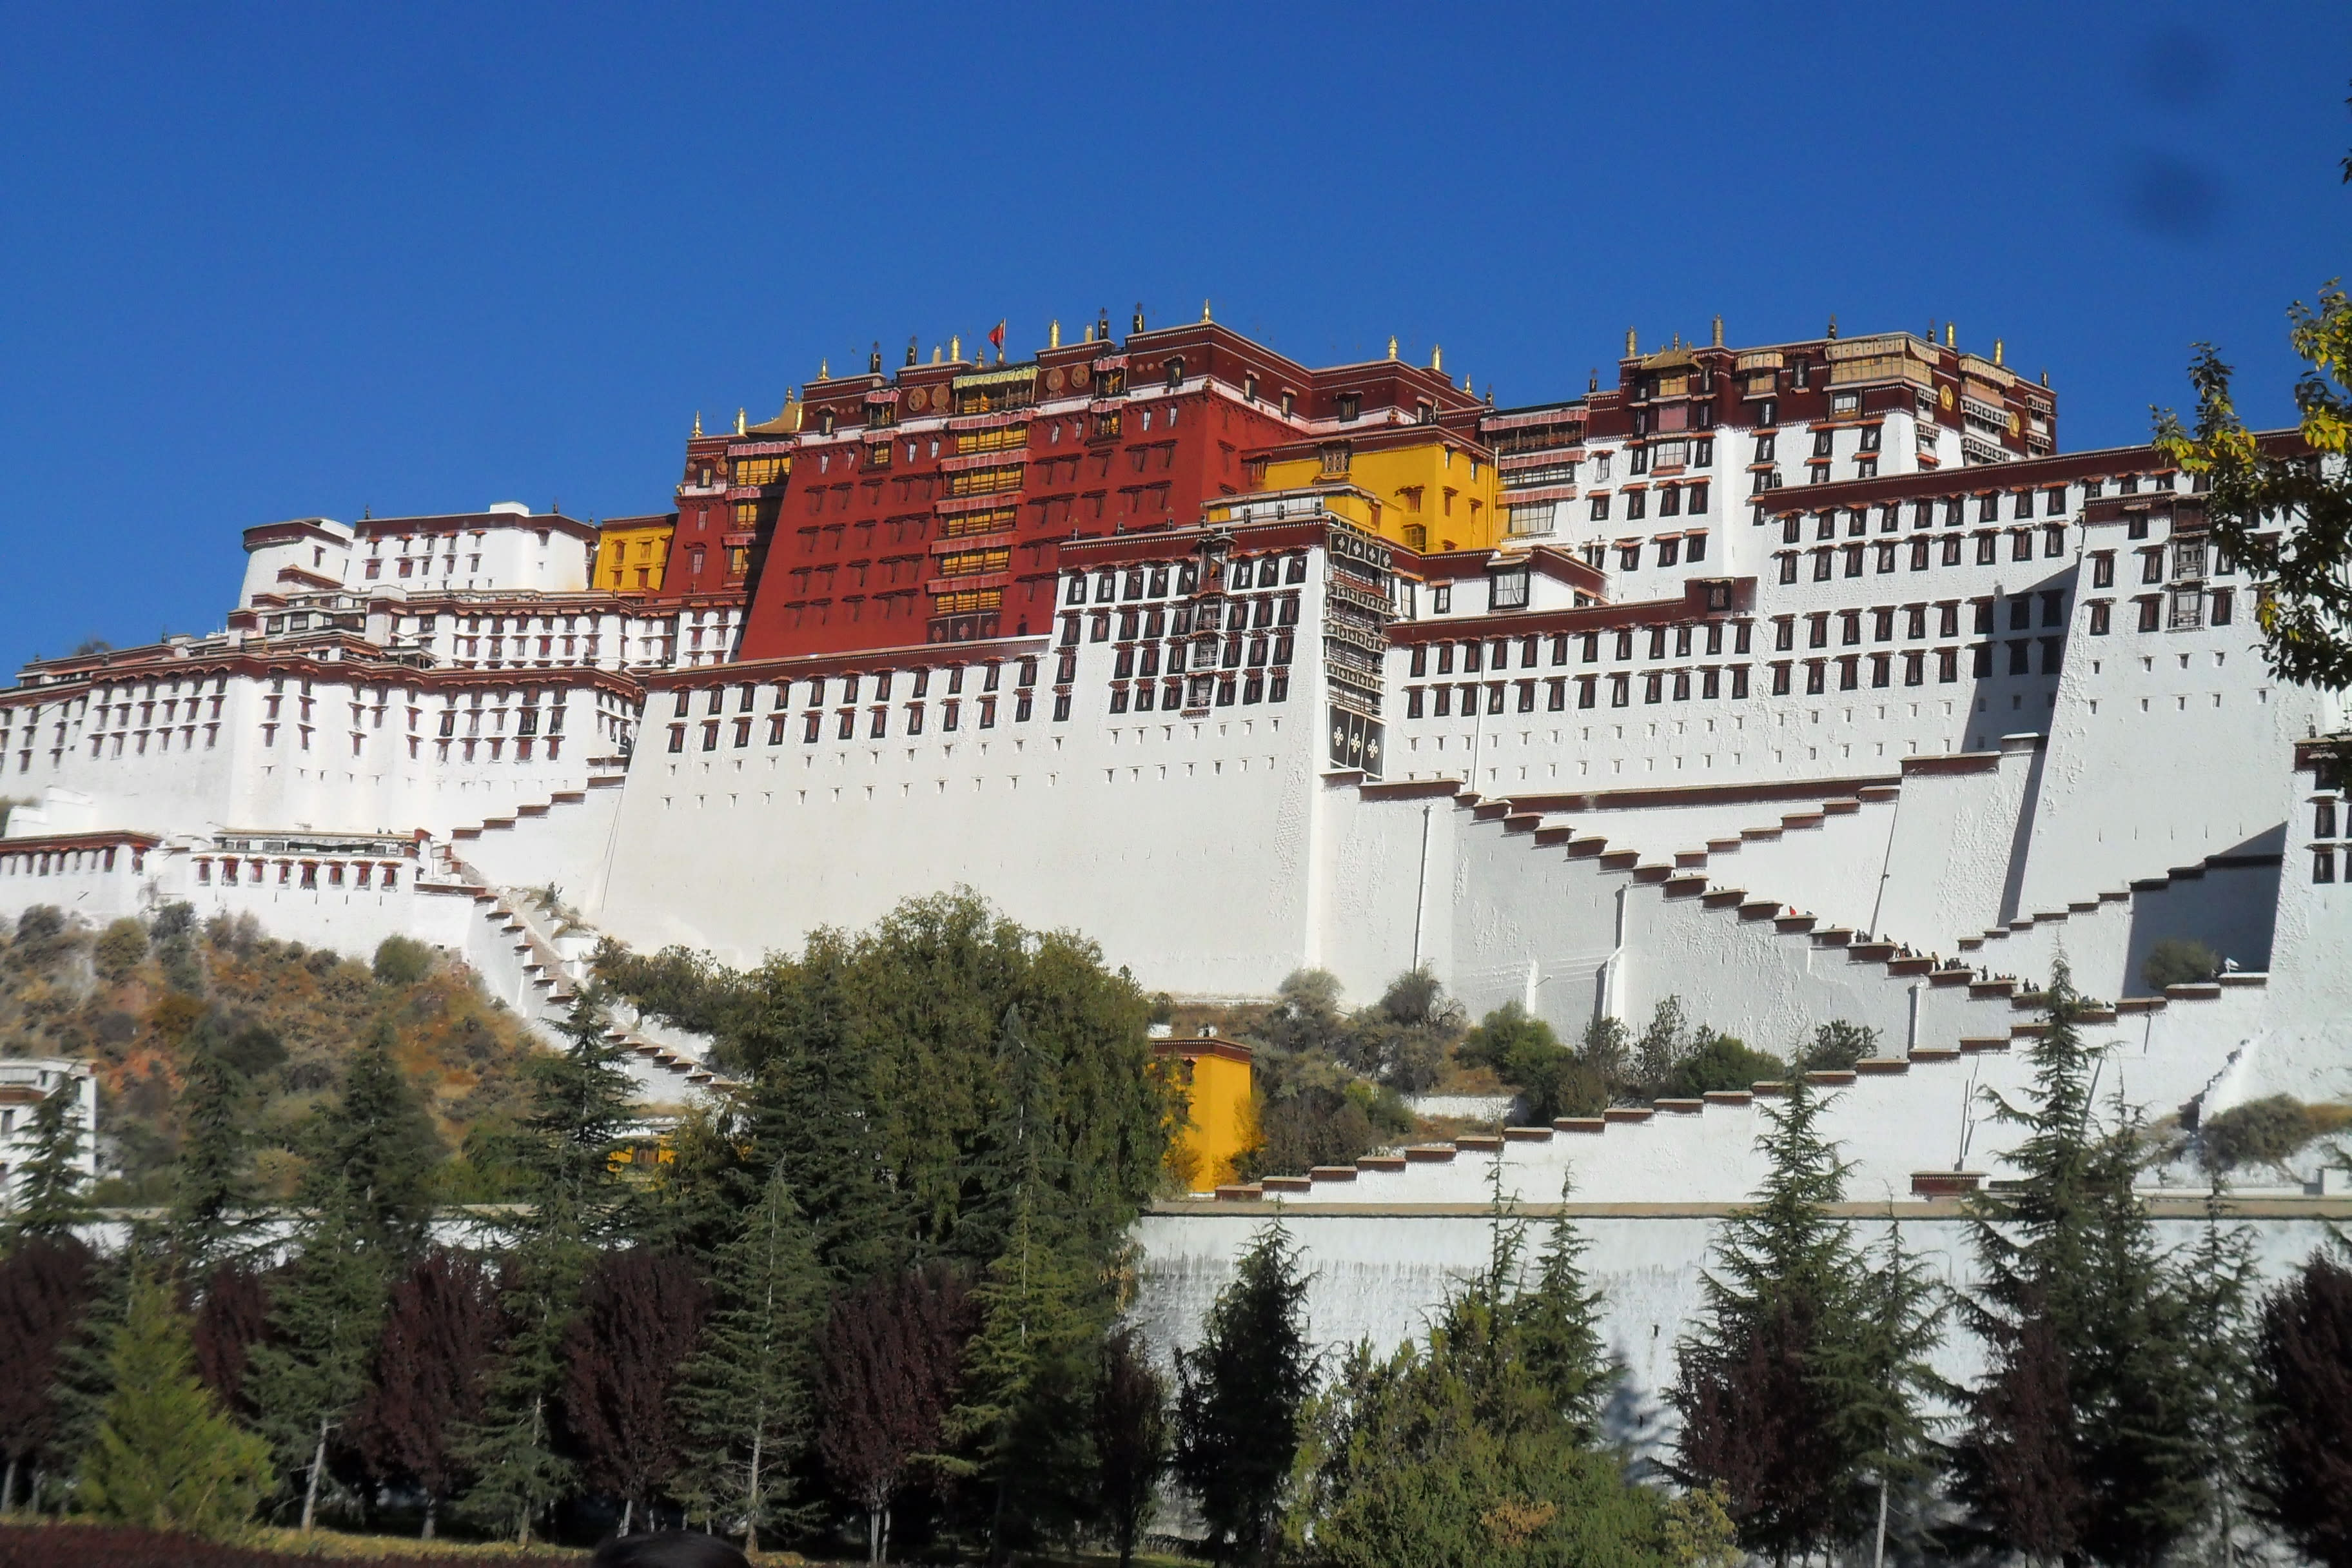 Enchanting Travels Tibet Tours Potala Palace